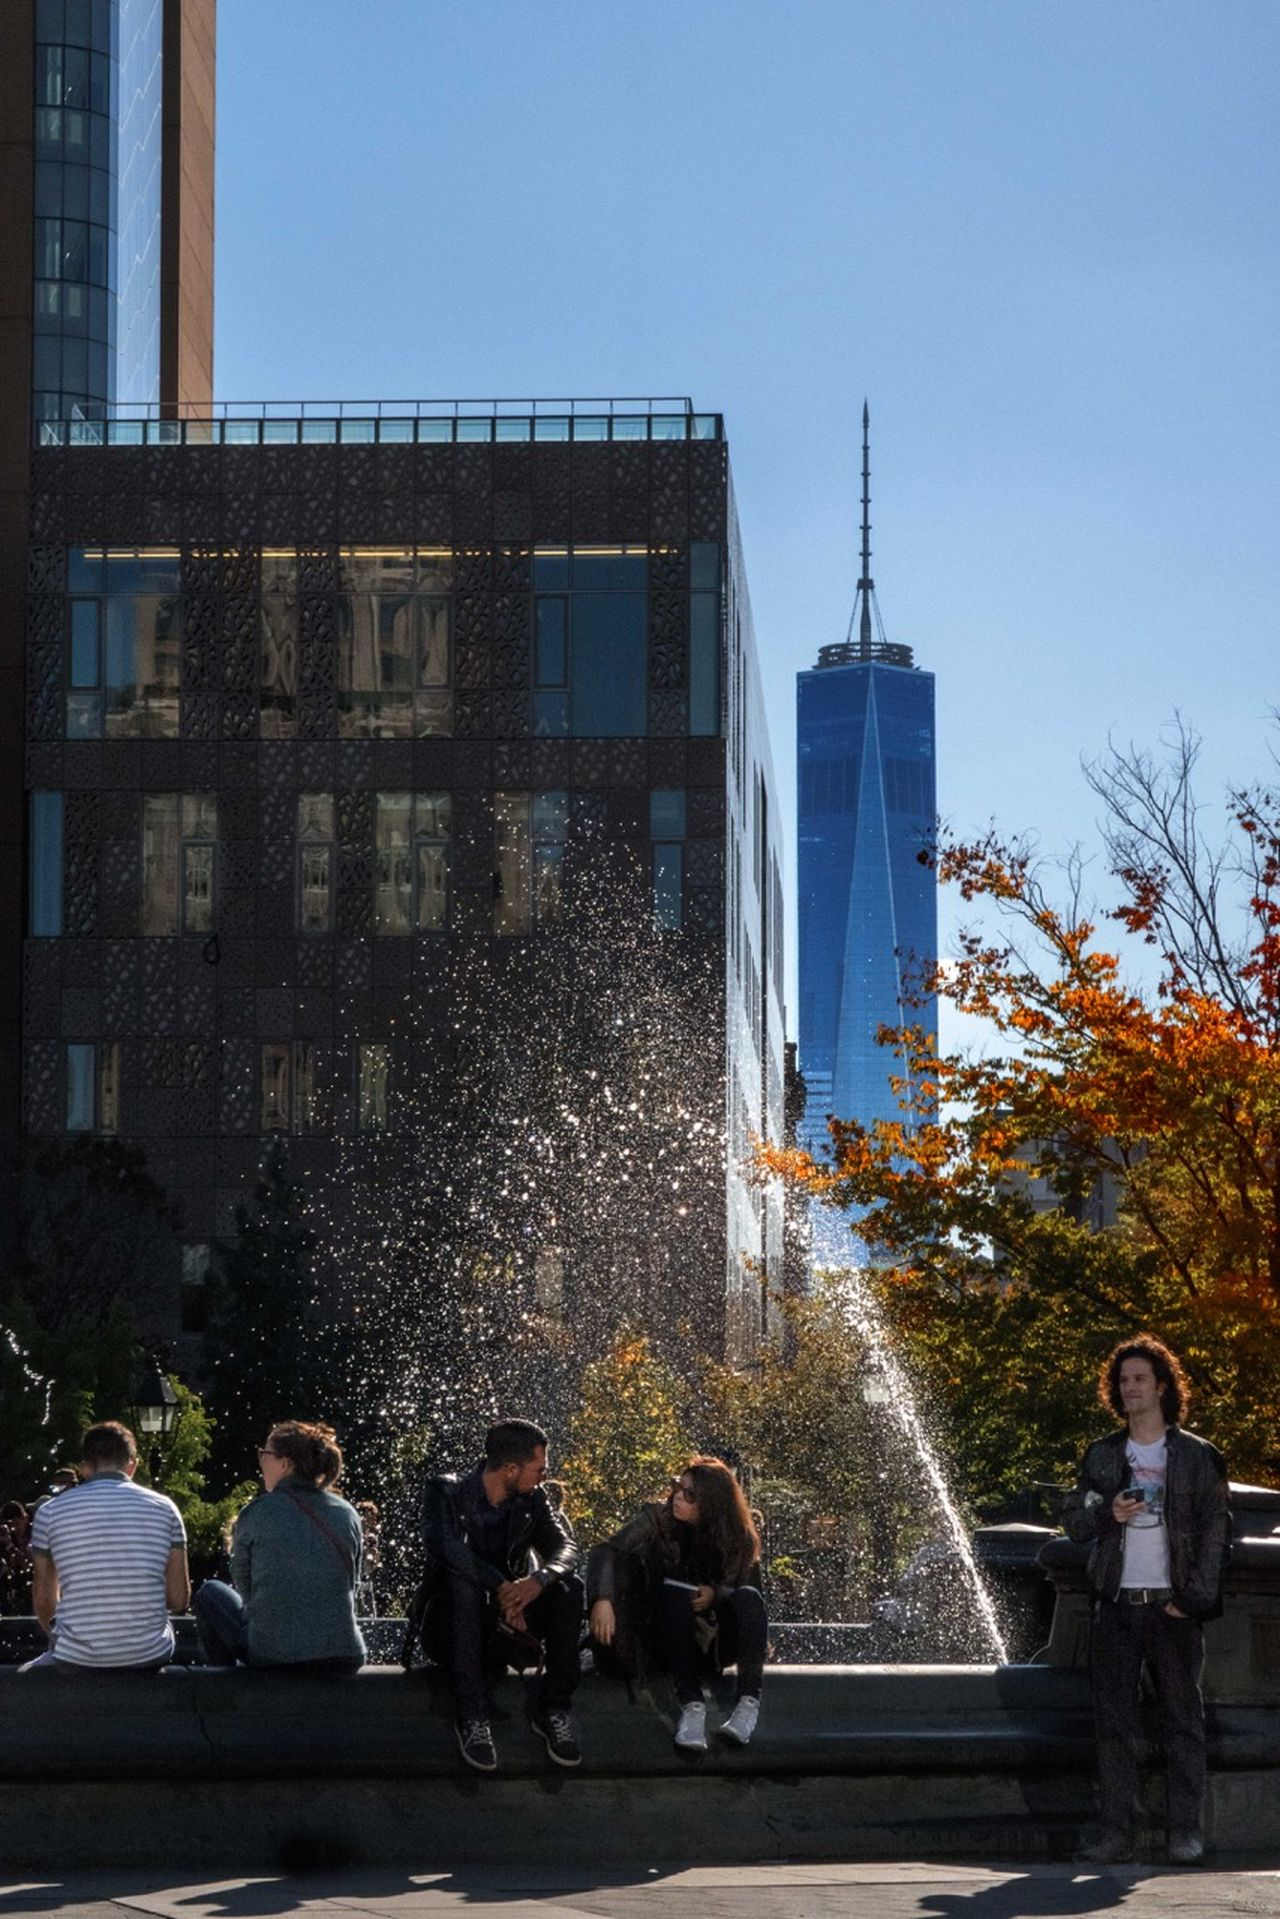 City Life Exterior Fountain Freedom Tower NYC Leisure Activity Place For Music & Street Theater Place To Met Friends Wash. Sq. Park, NYC - 10/16/15